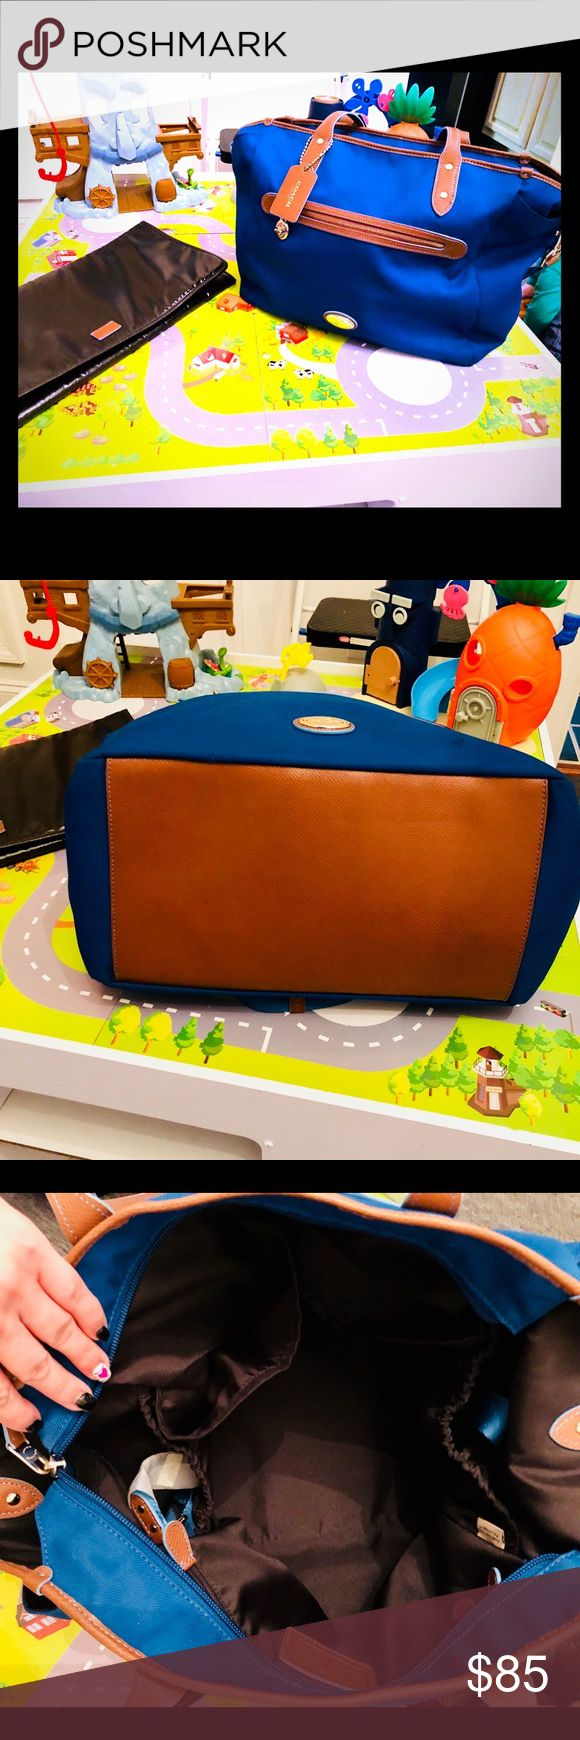 Coach Diaper Bag w/diaper pad Super cute Coach Diaper Bag w/ diaper Pad in excellent condition inside and out. Note: there is a small marker stain by zipper see photos but does not take away from bag or function. Perfect for a girl or boy. Coach Accessories Bags